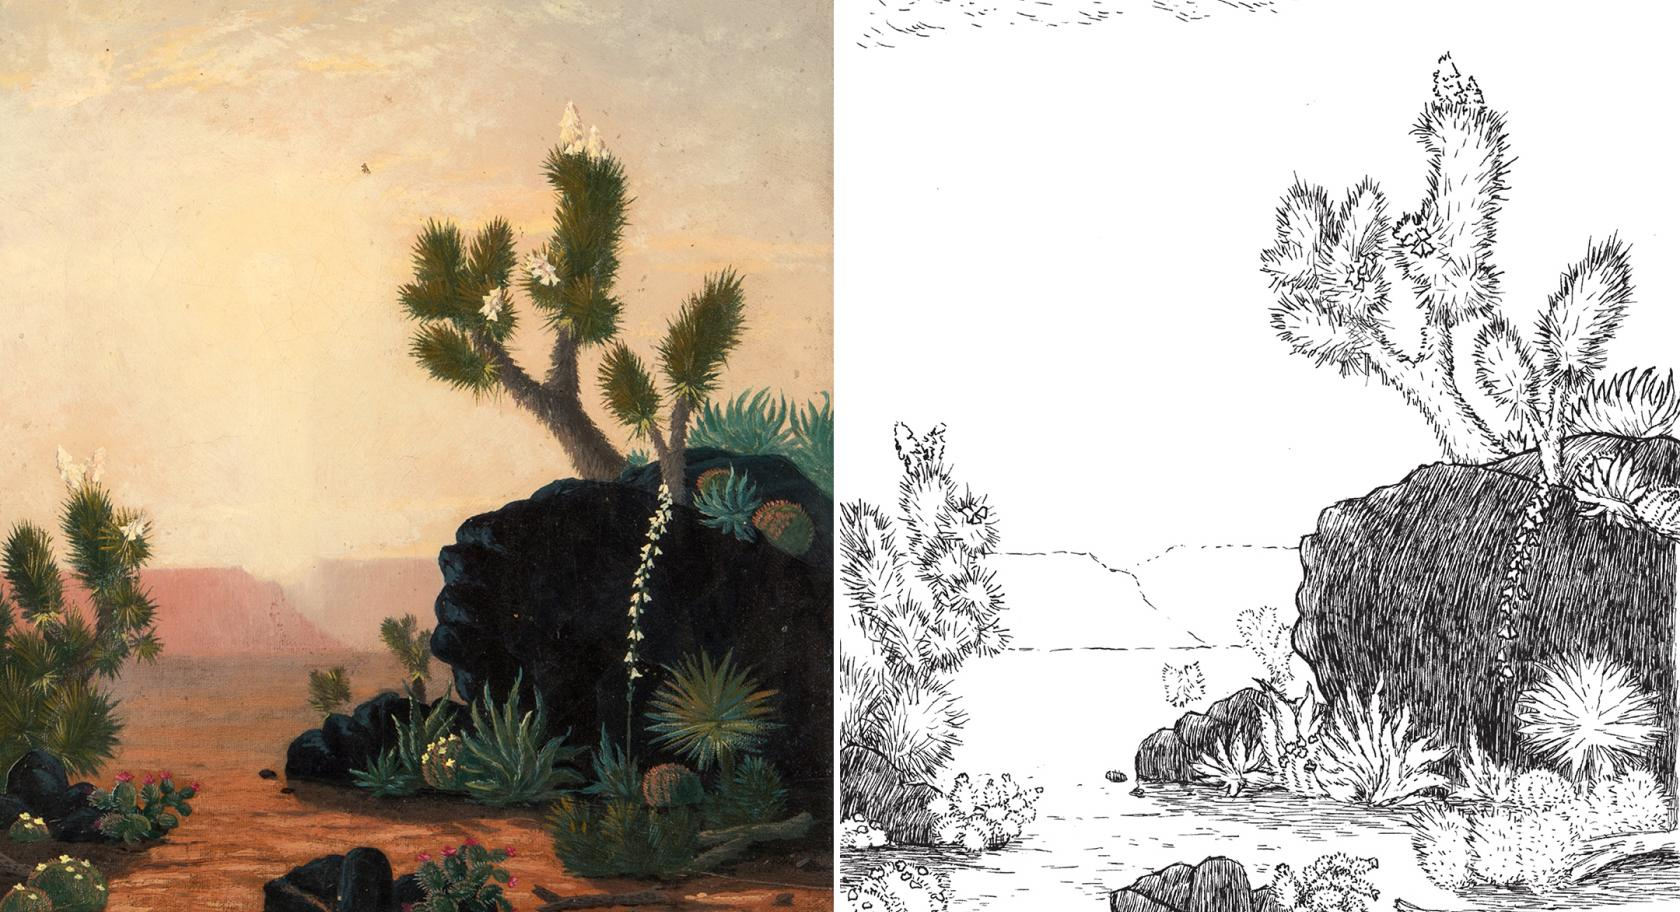 Side by side of original painting A Nook of the Desert with coloring page, Alfred Lanbourne, American, A Nook of the Desert, 1875, oil on canvas, UMFA2016.9.1